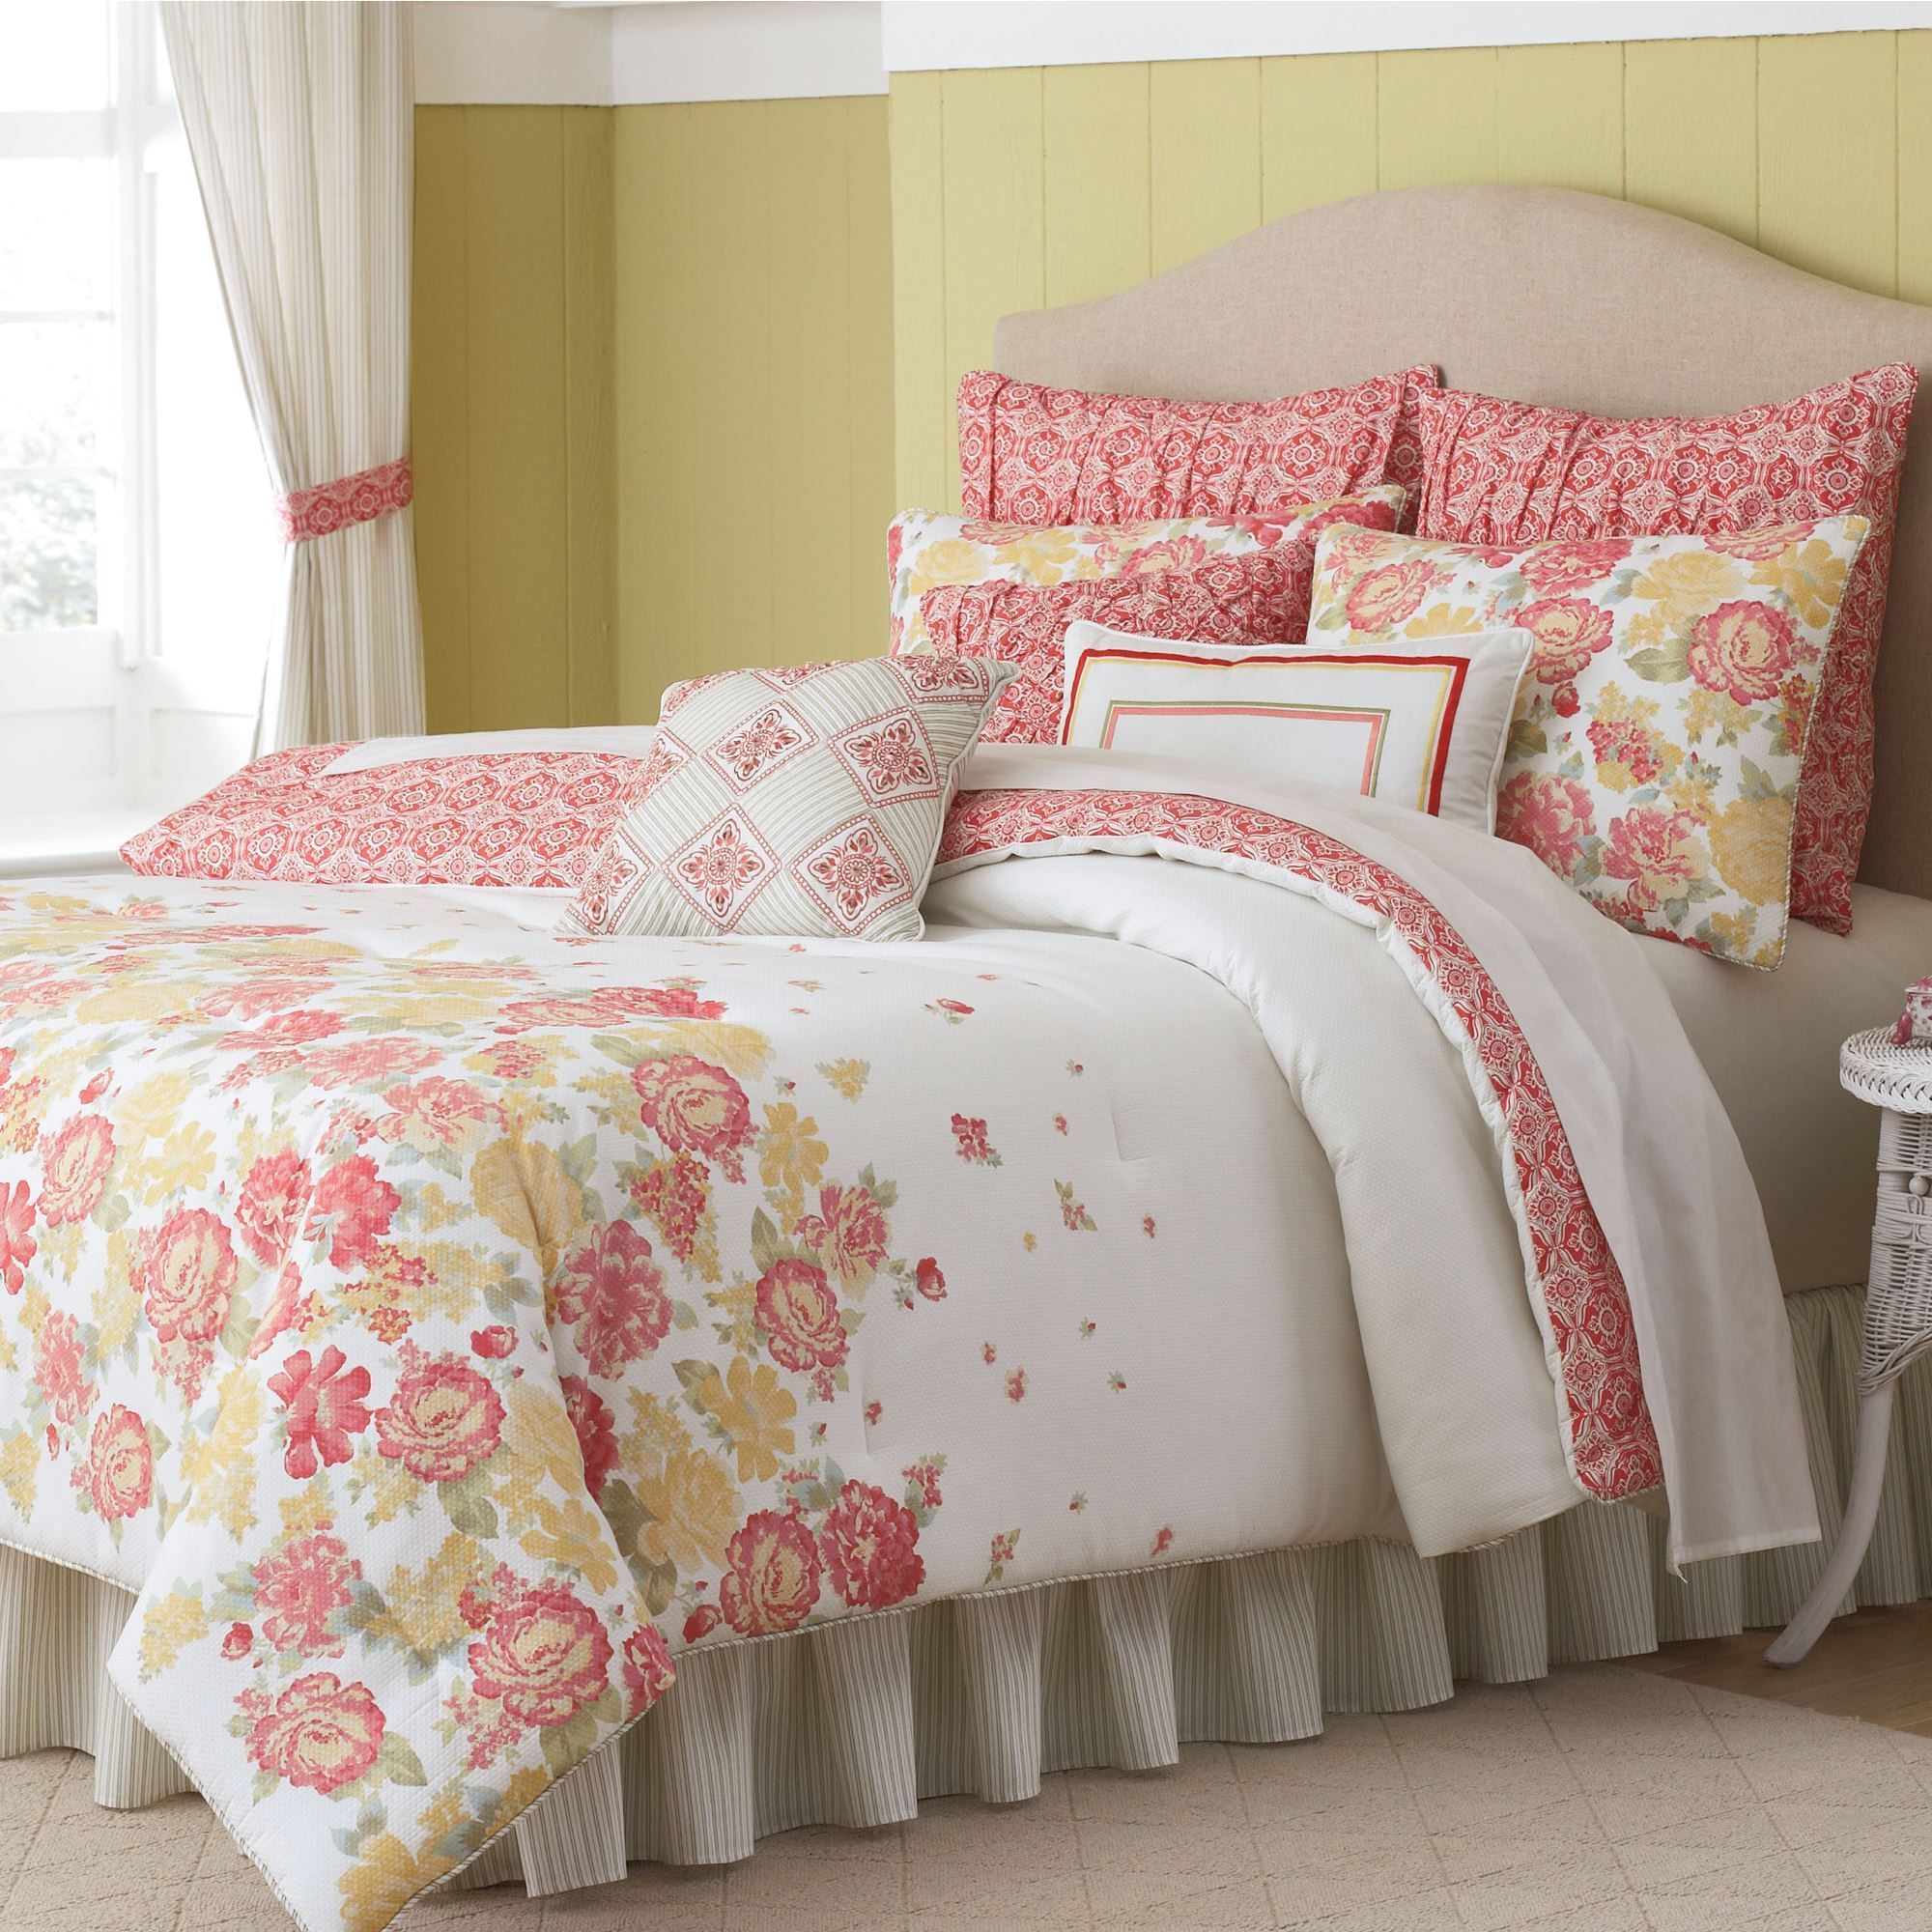 and bedding bamboo aqua design fleur mustard in floral yellow dahlia selling on or best comforter blue duvet gray flower products